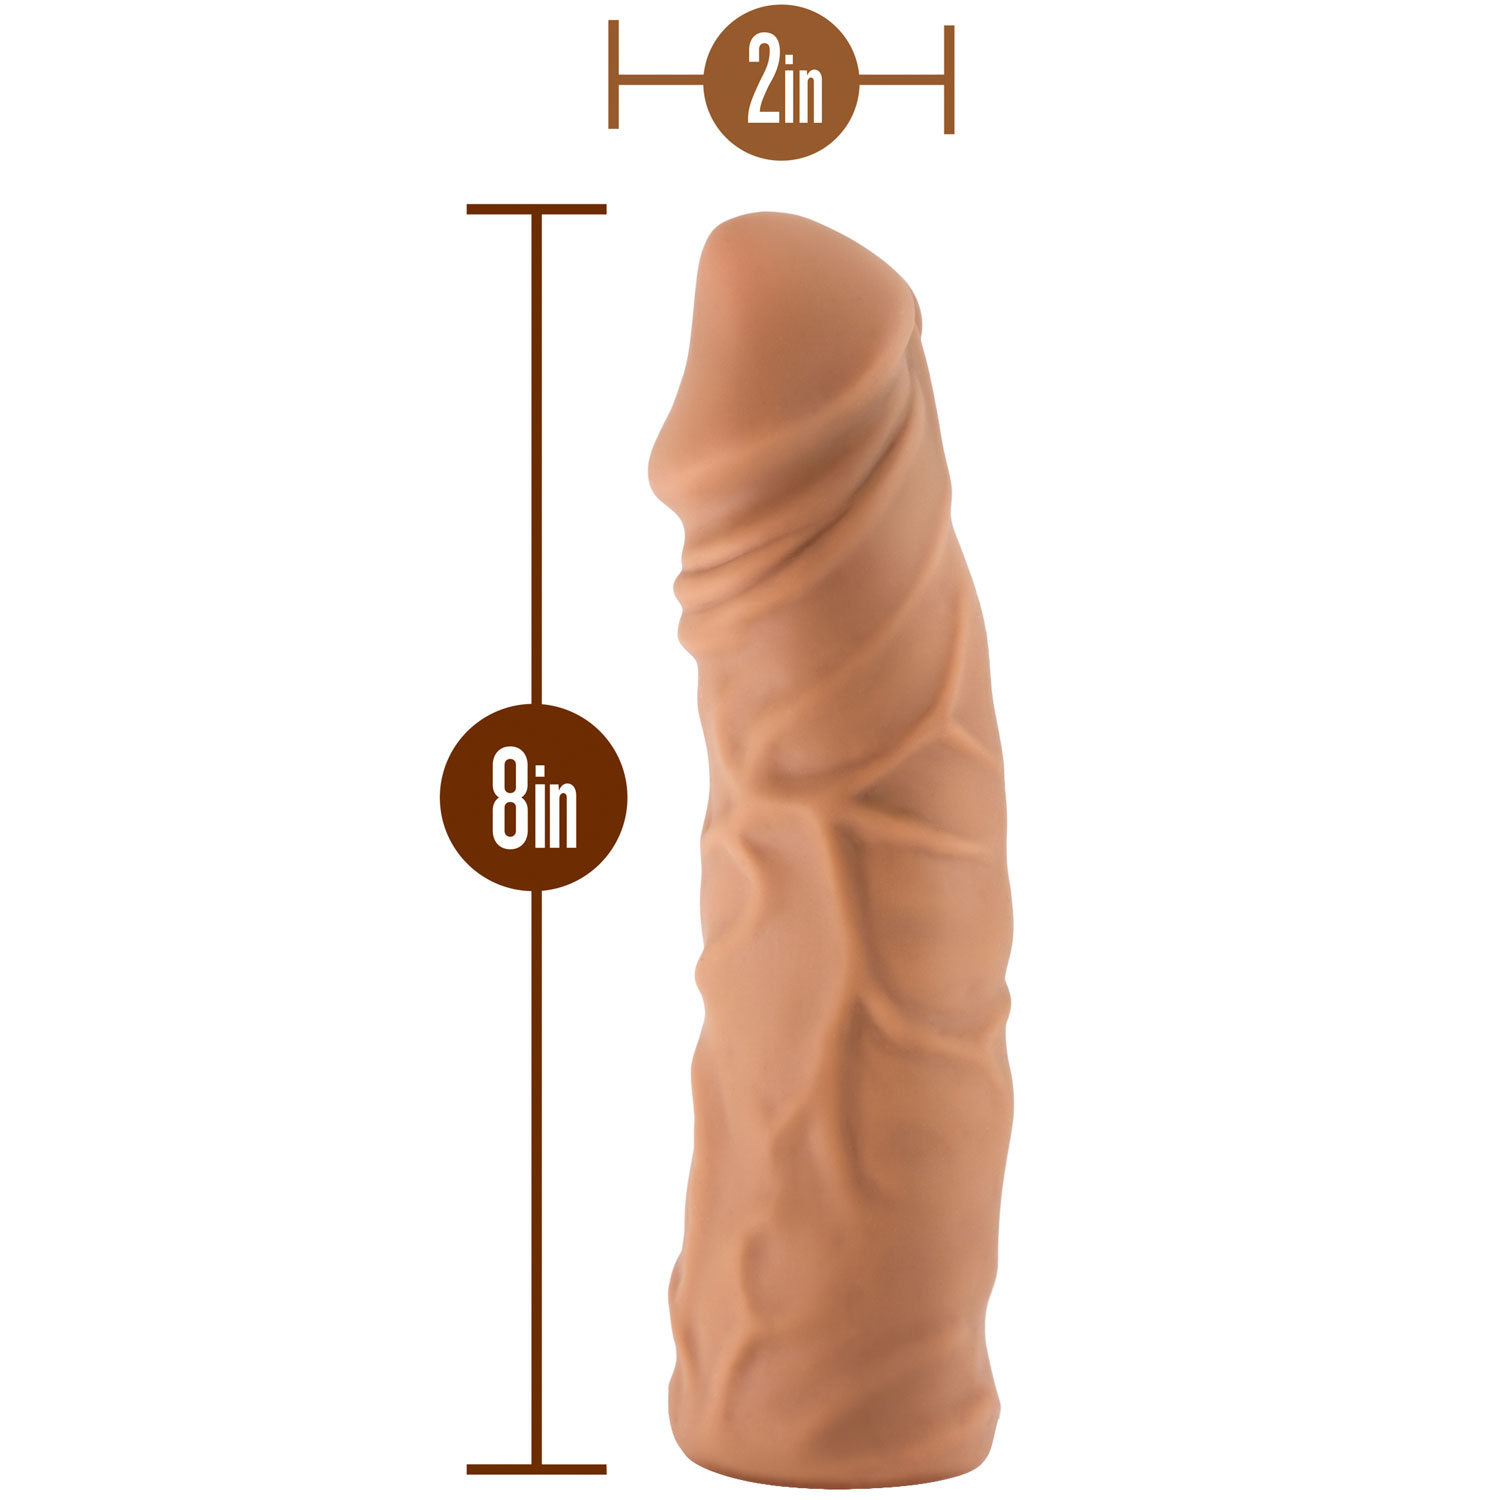 The Realm Realistic 8 Inch Silicone Lock On Dildo - Measurements